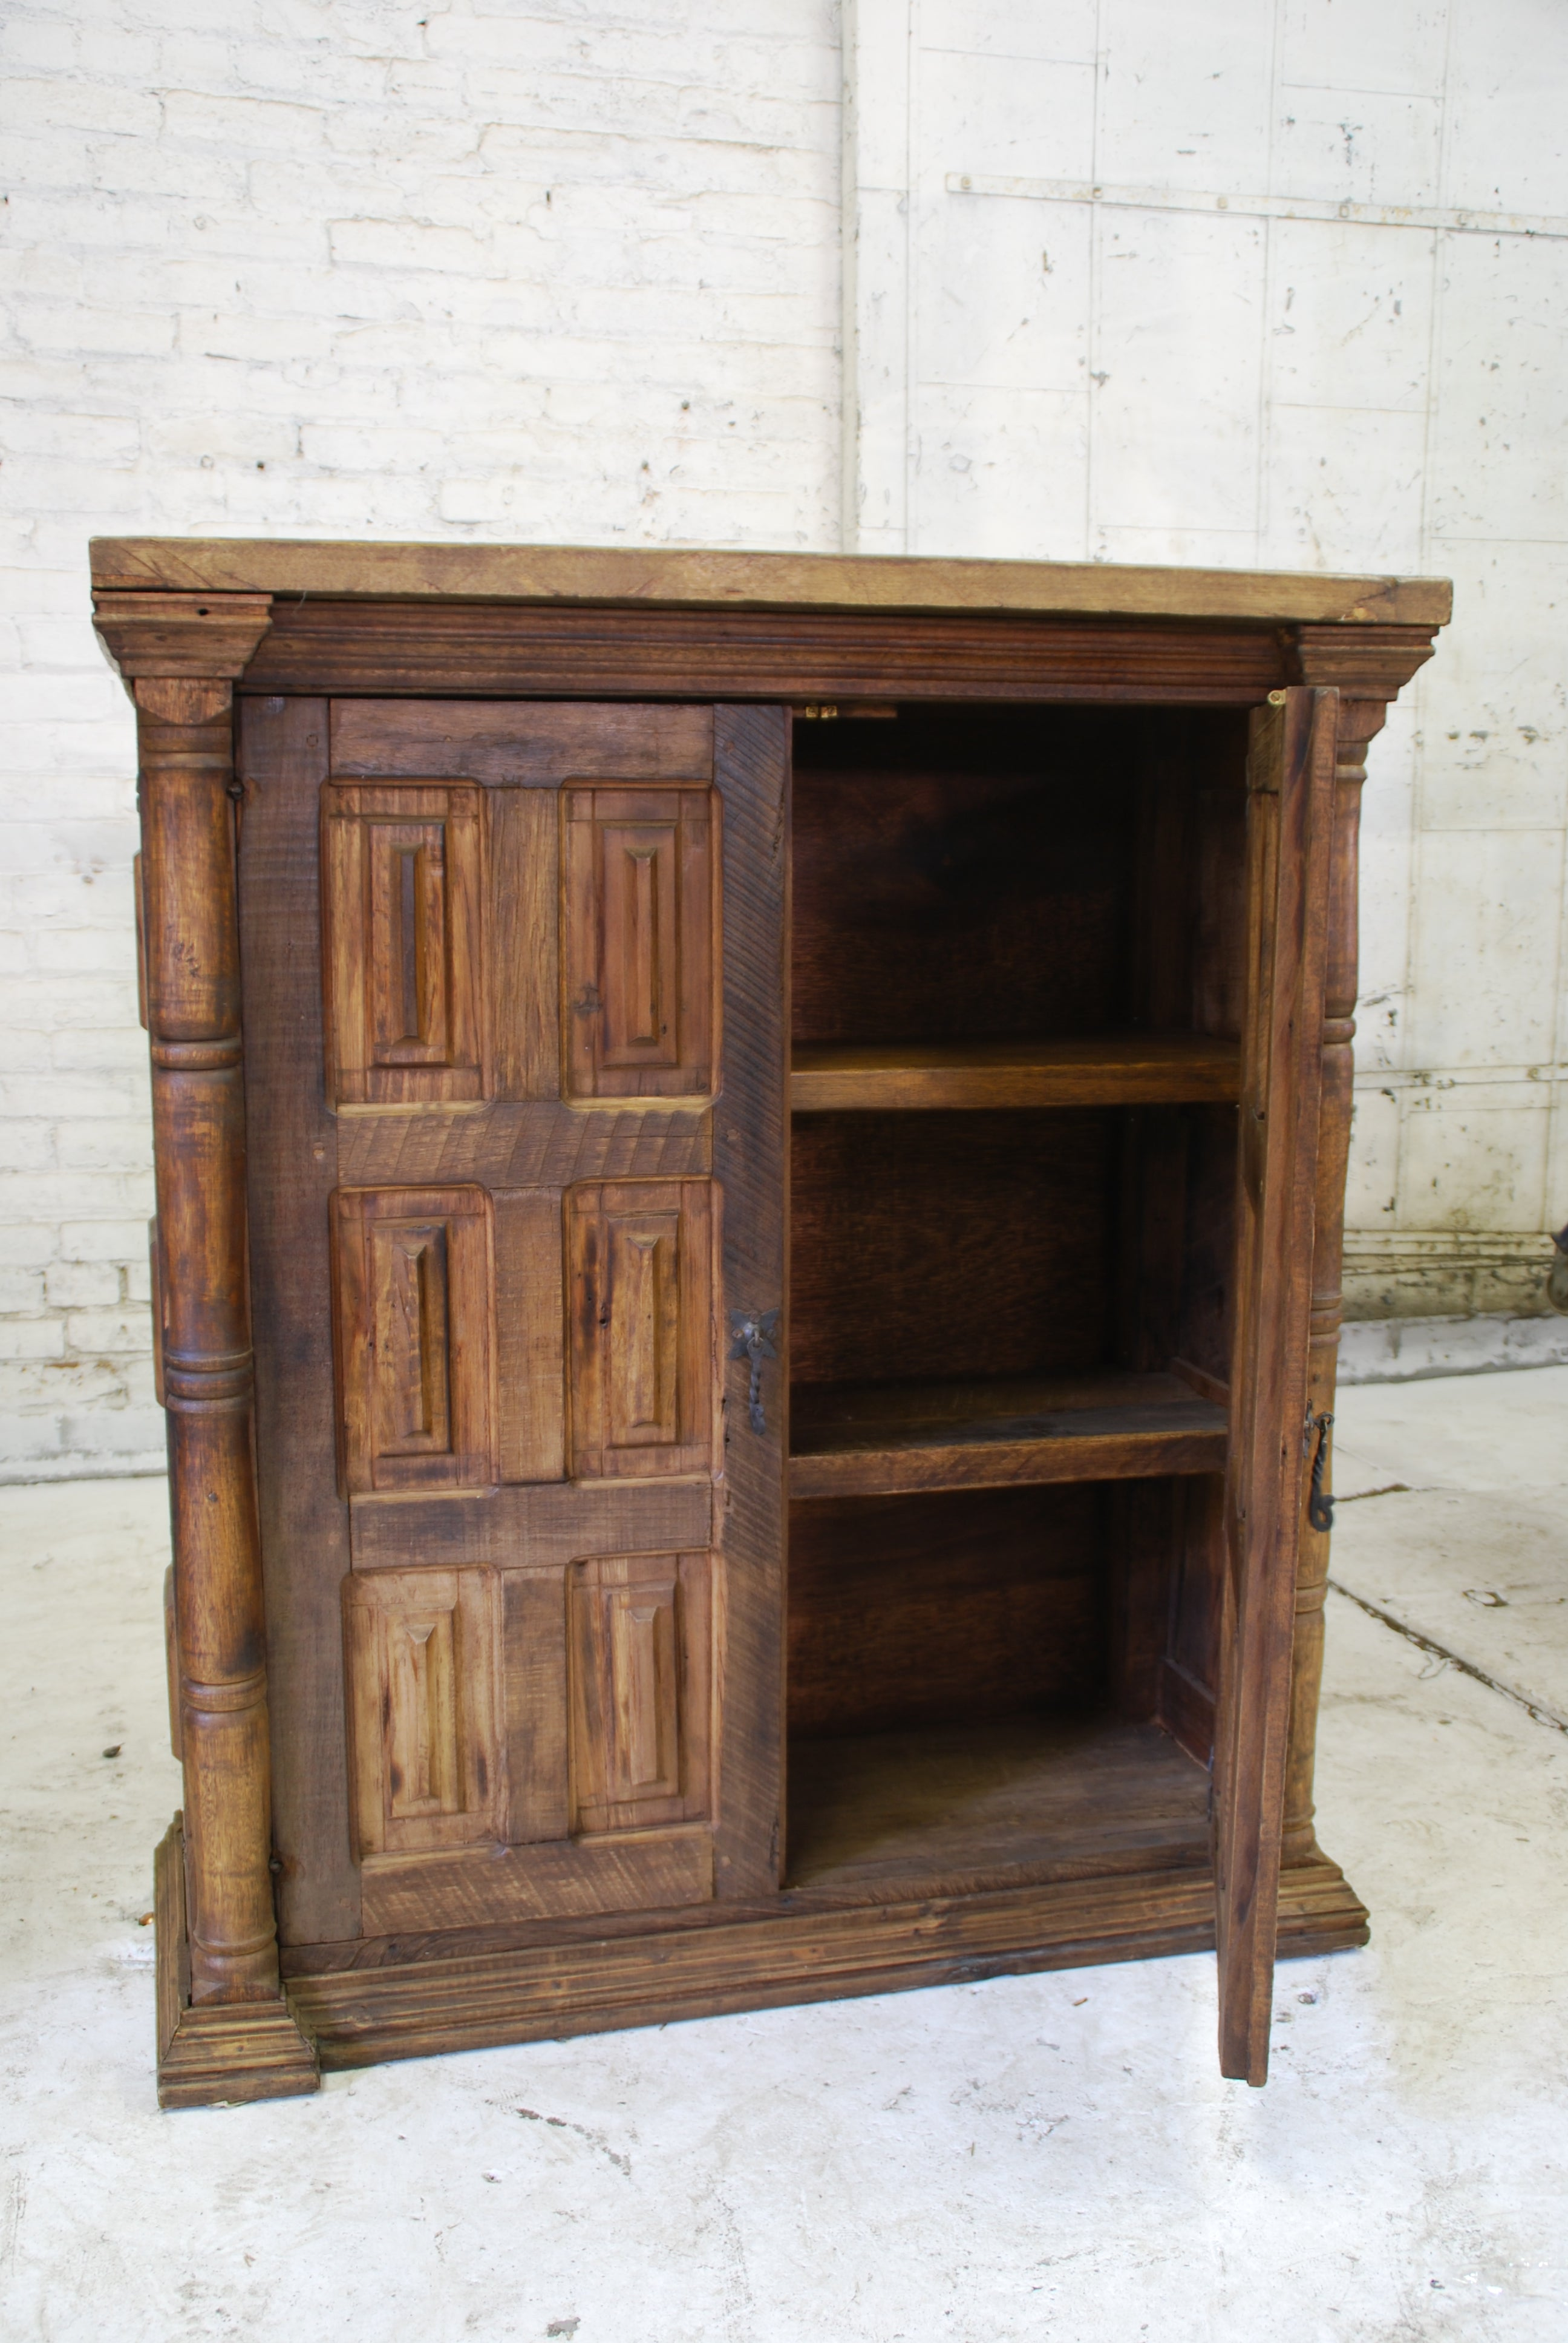 Reclaimed Barn Wood Bookcase - Wide Column Accents